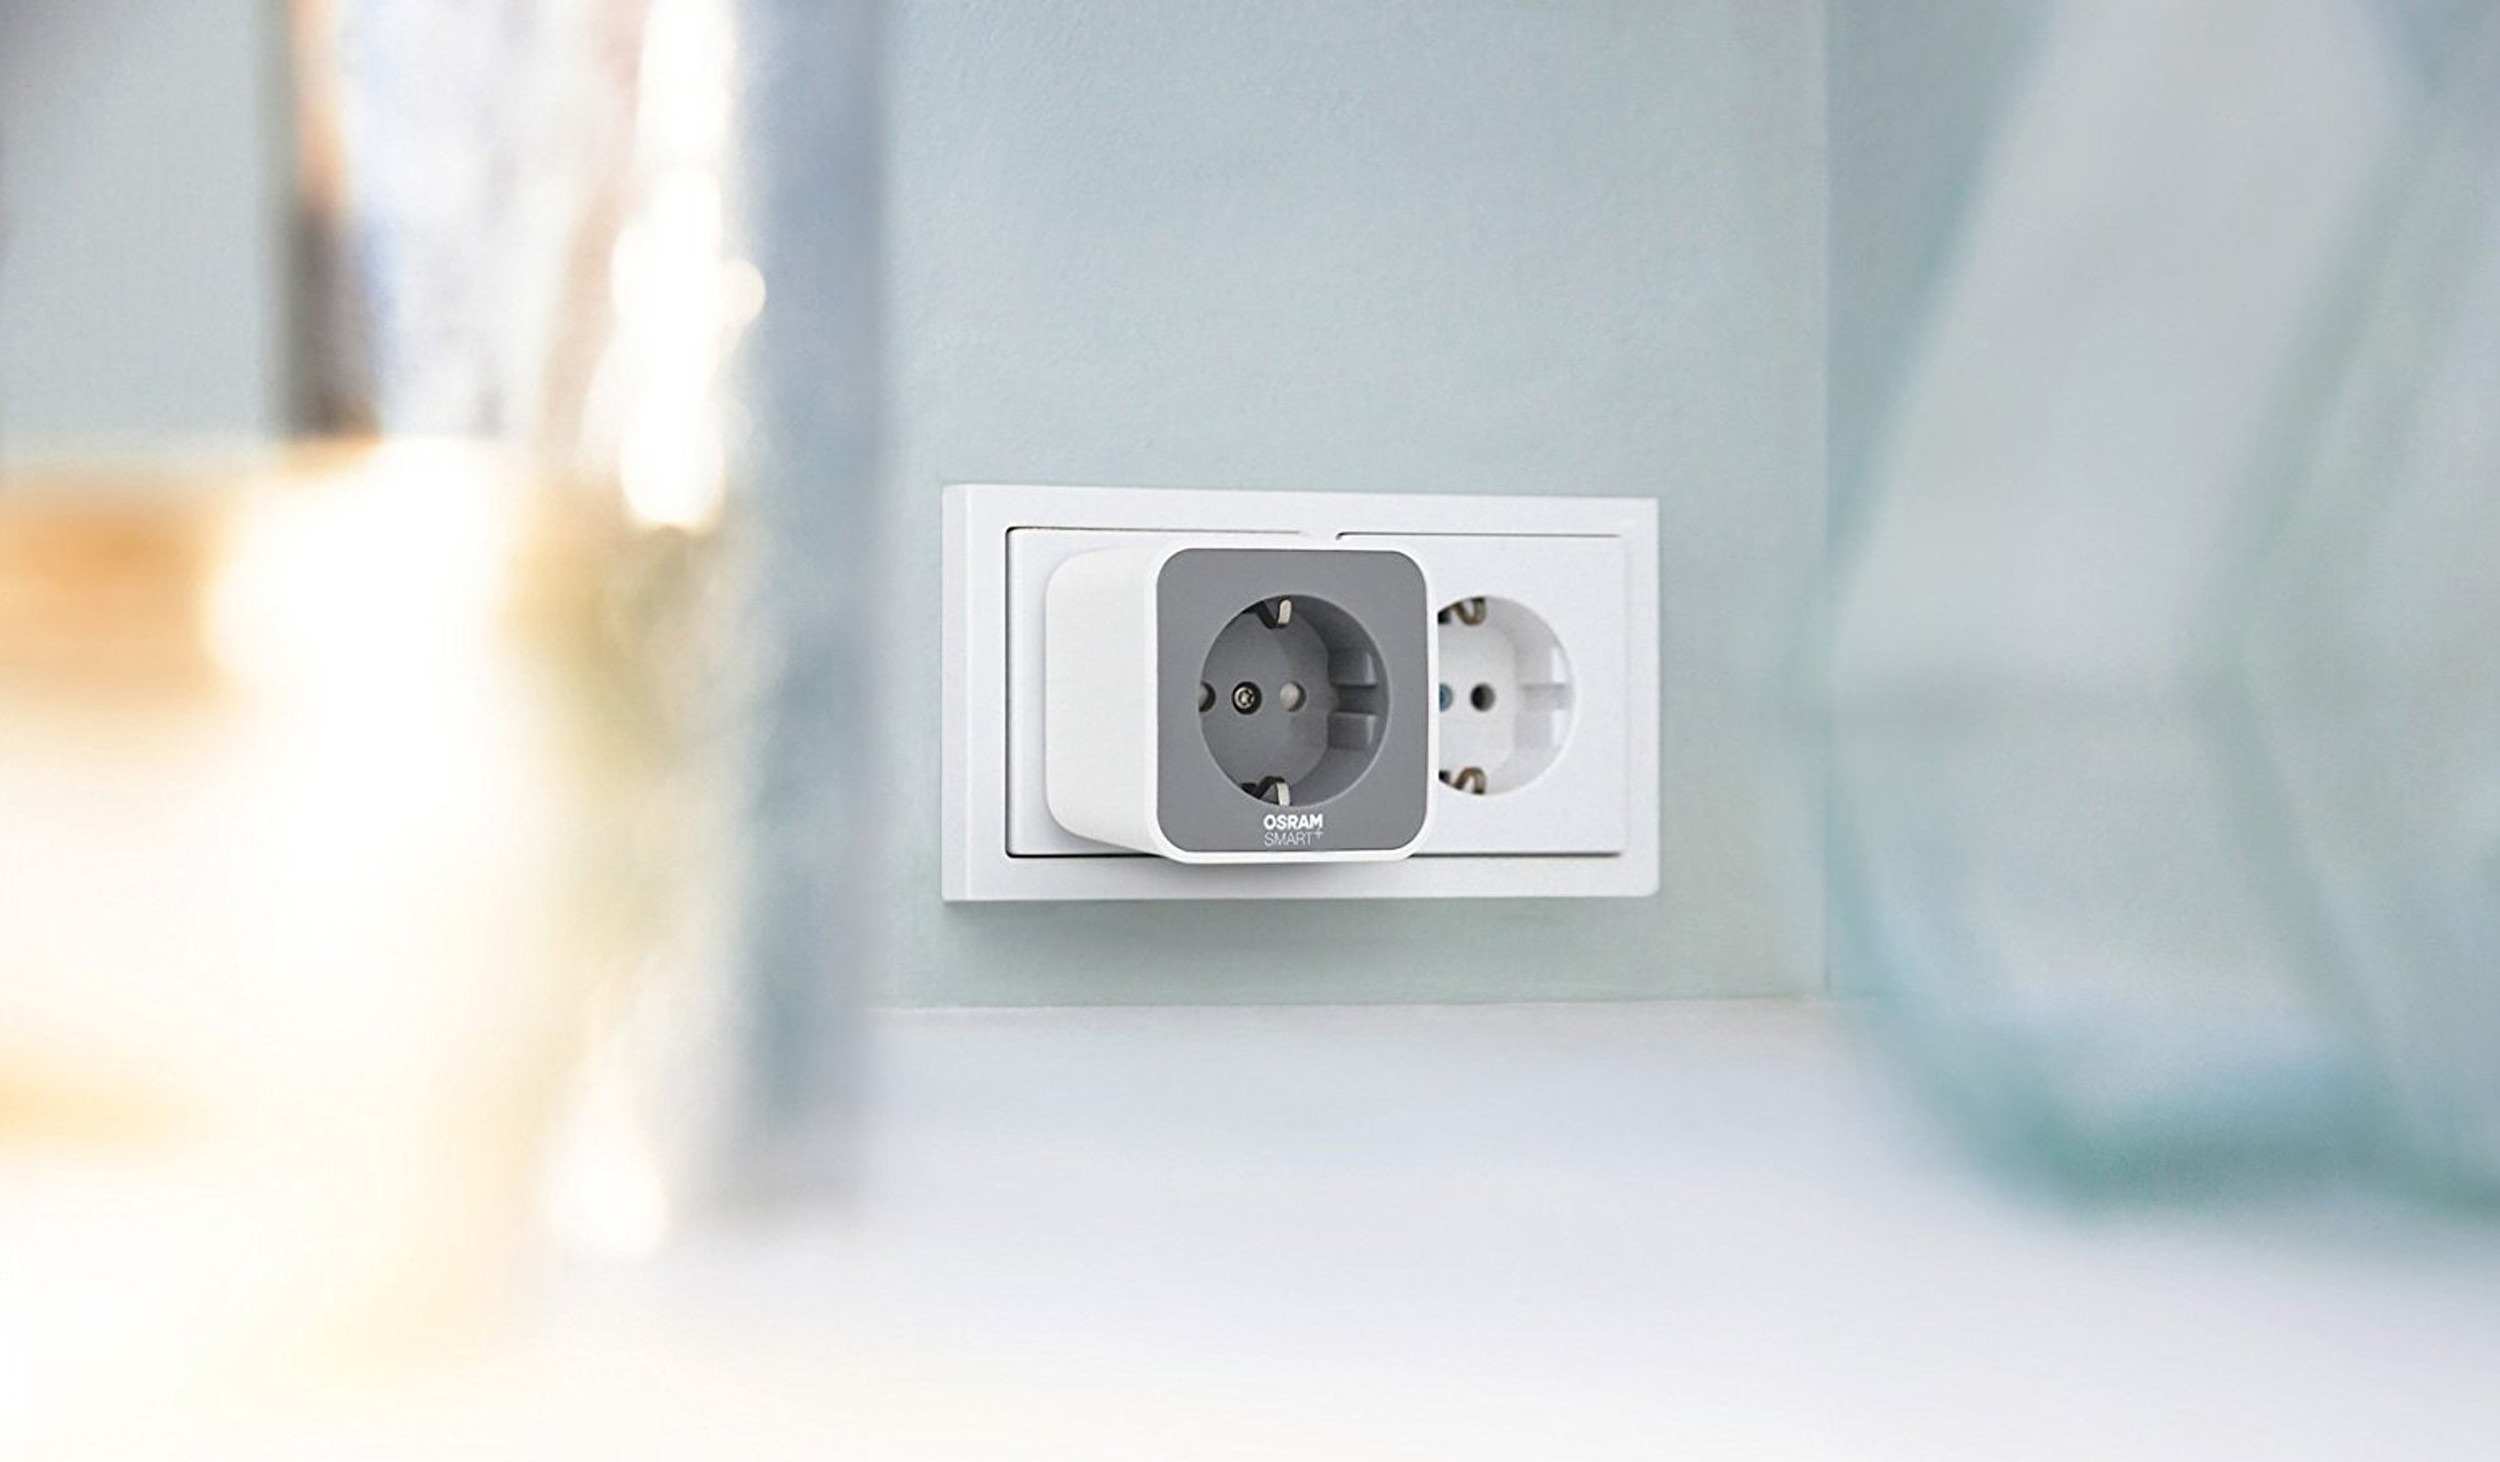 Connecting an Osram Smart+ plug to Philips Hue